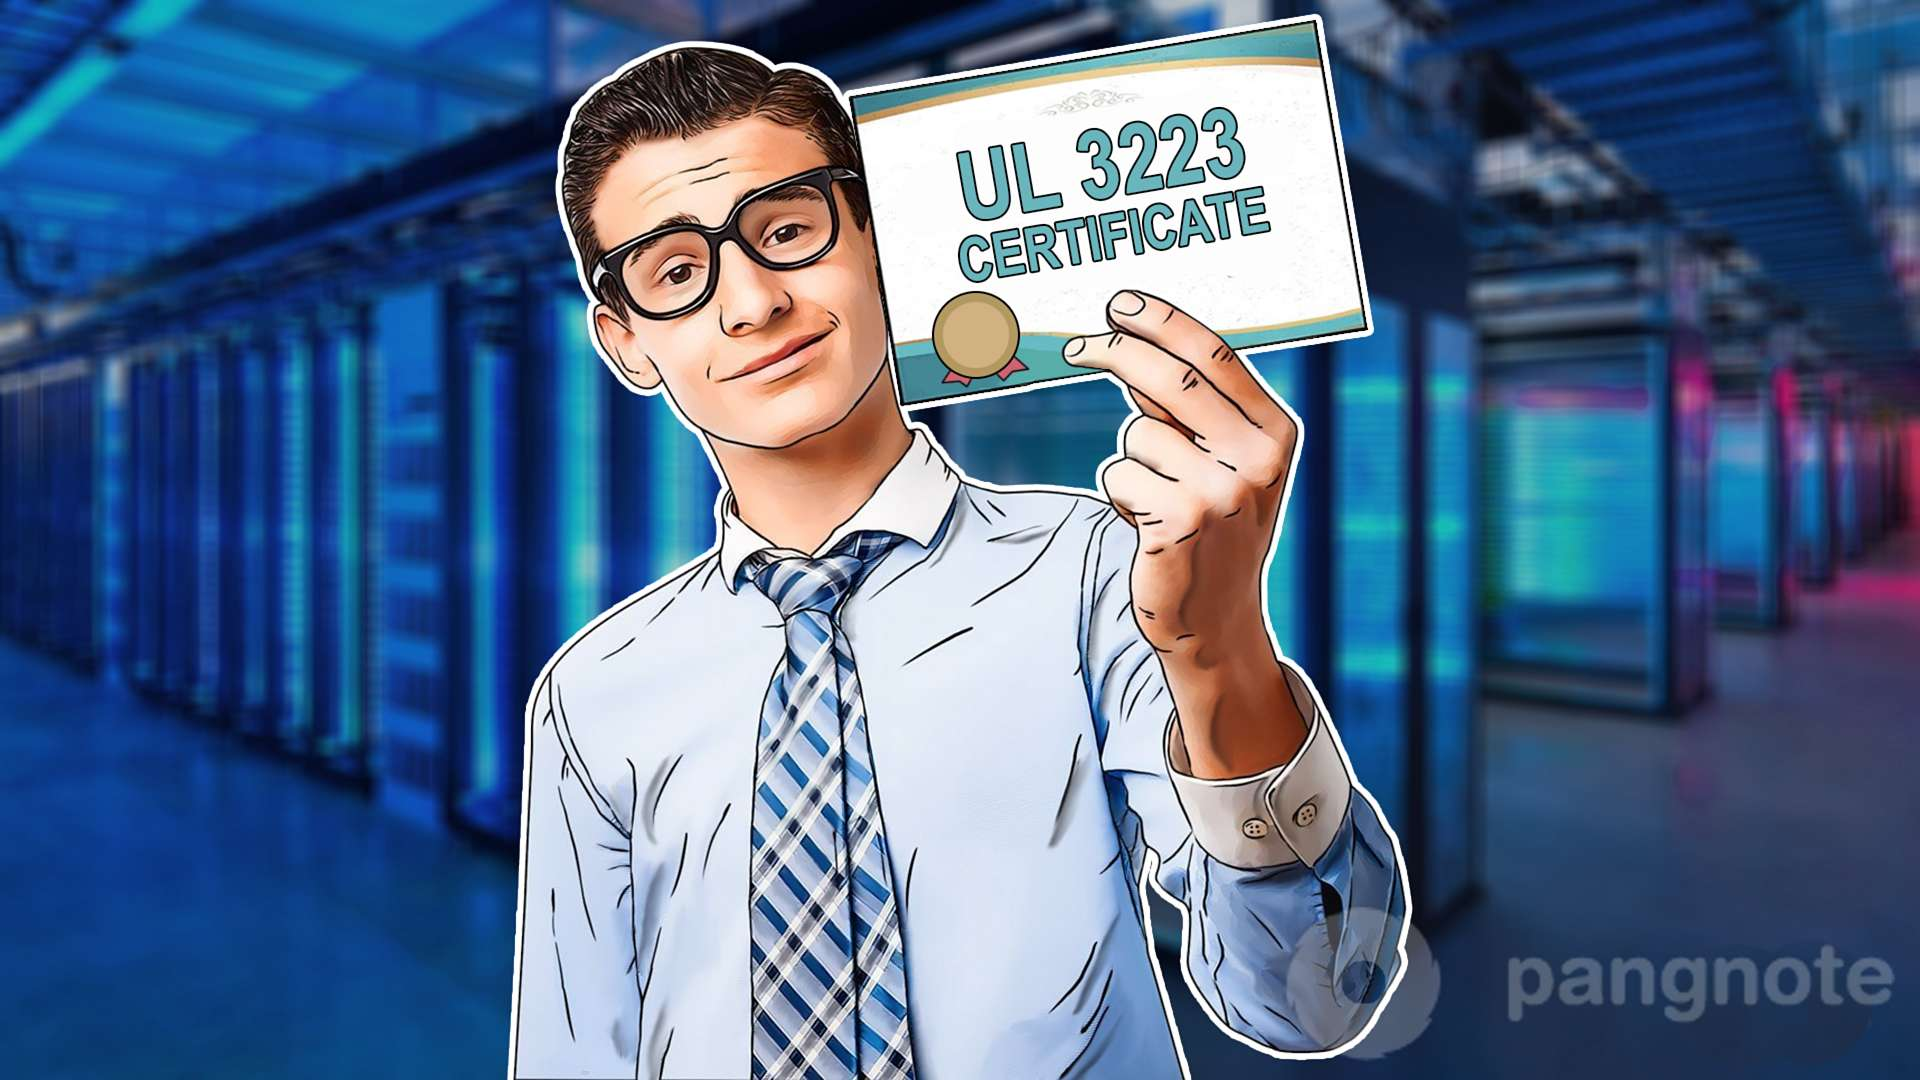 Why dedicated server hostings centers are interested in UL 3223 certificate?